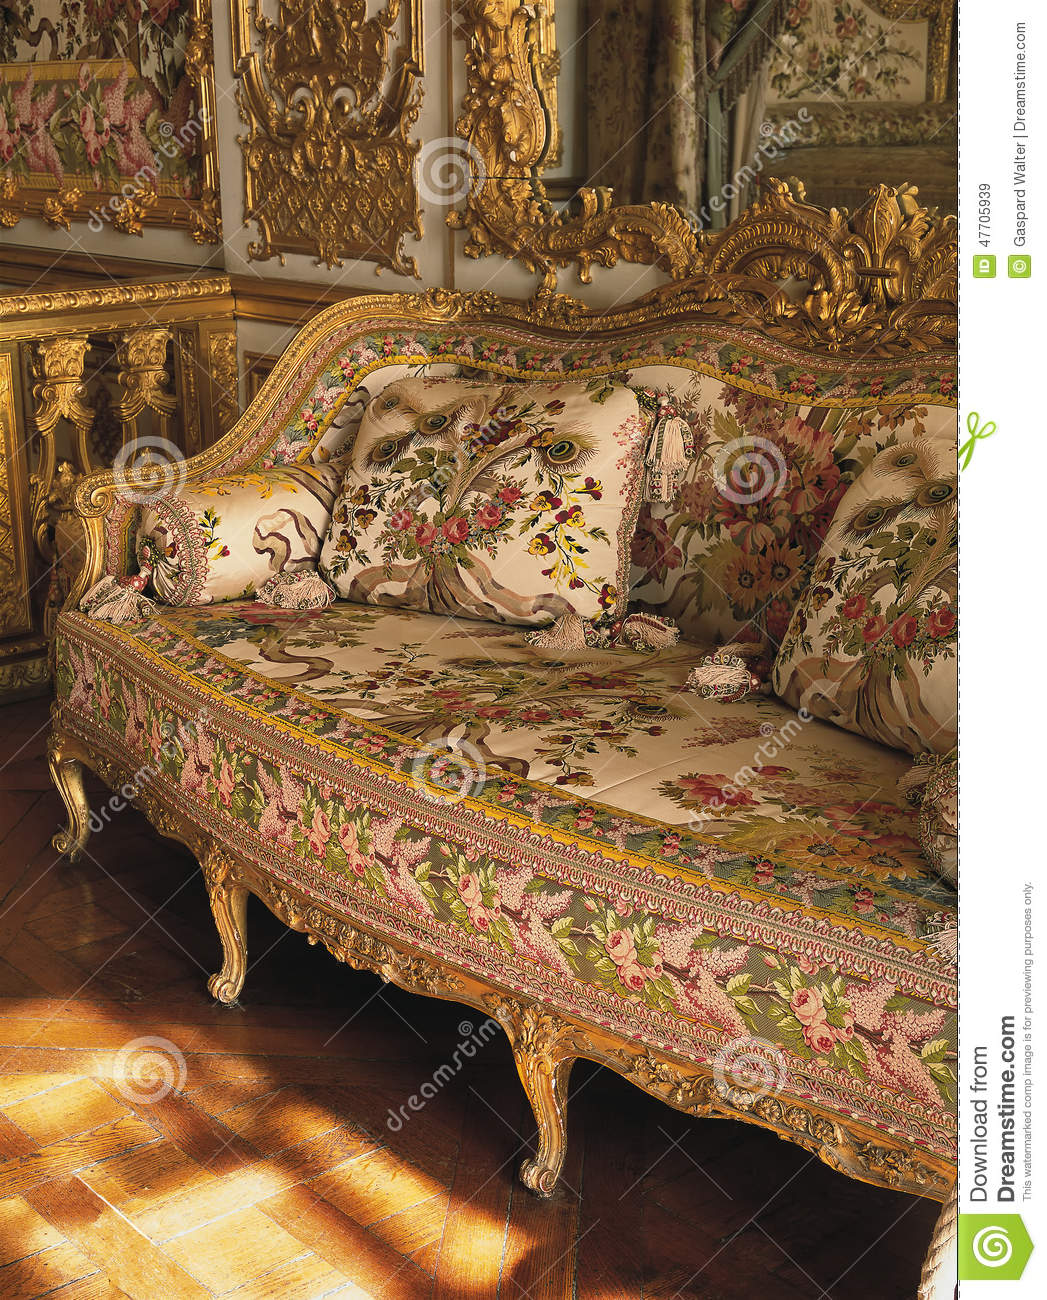 Groovy Furniture In Queen Marie Antoinette Bedroom At Versailles Home Interior And Landscaping Palasignezvosmurscom